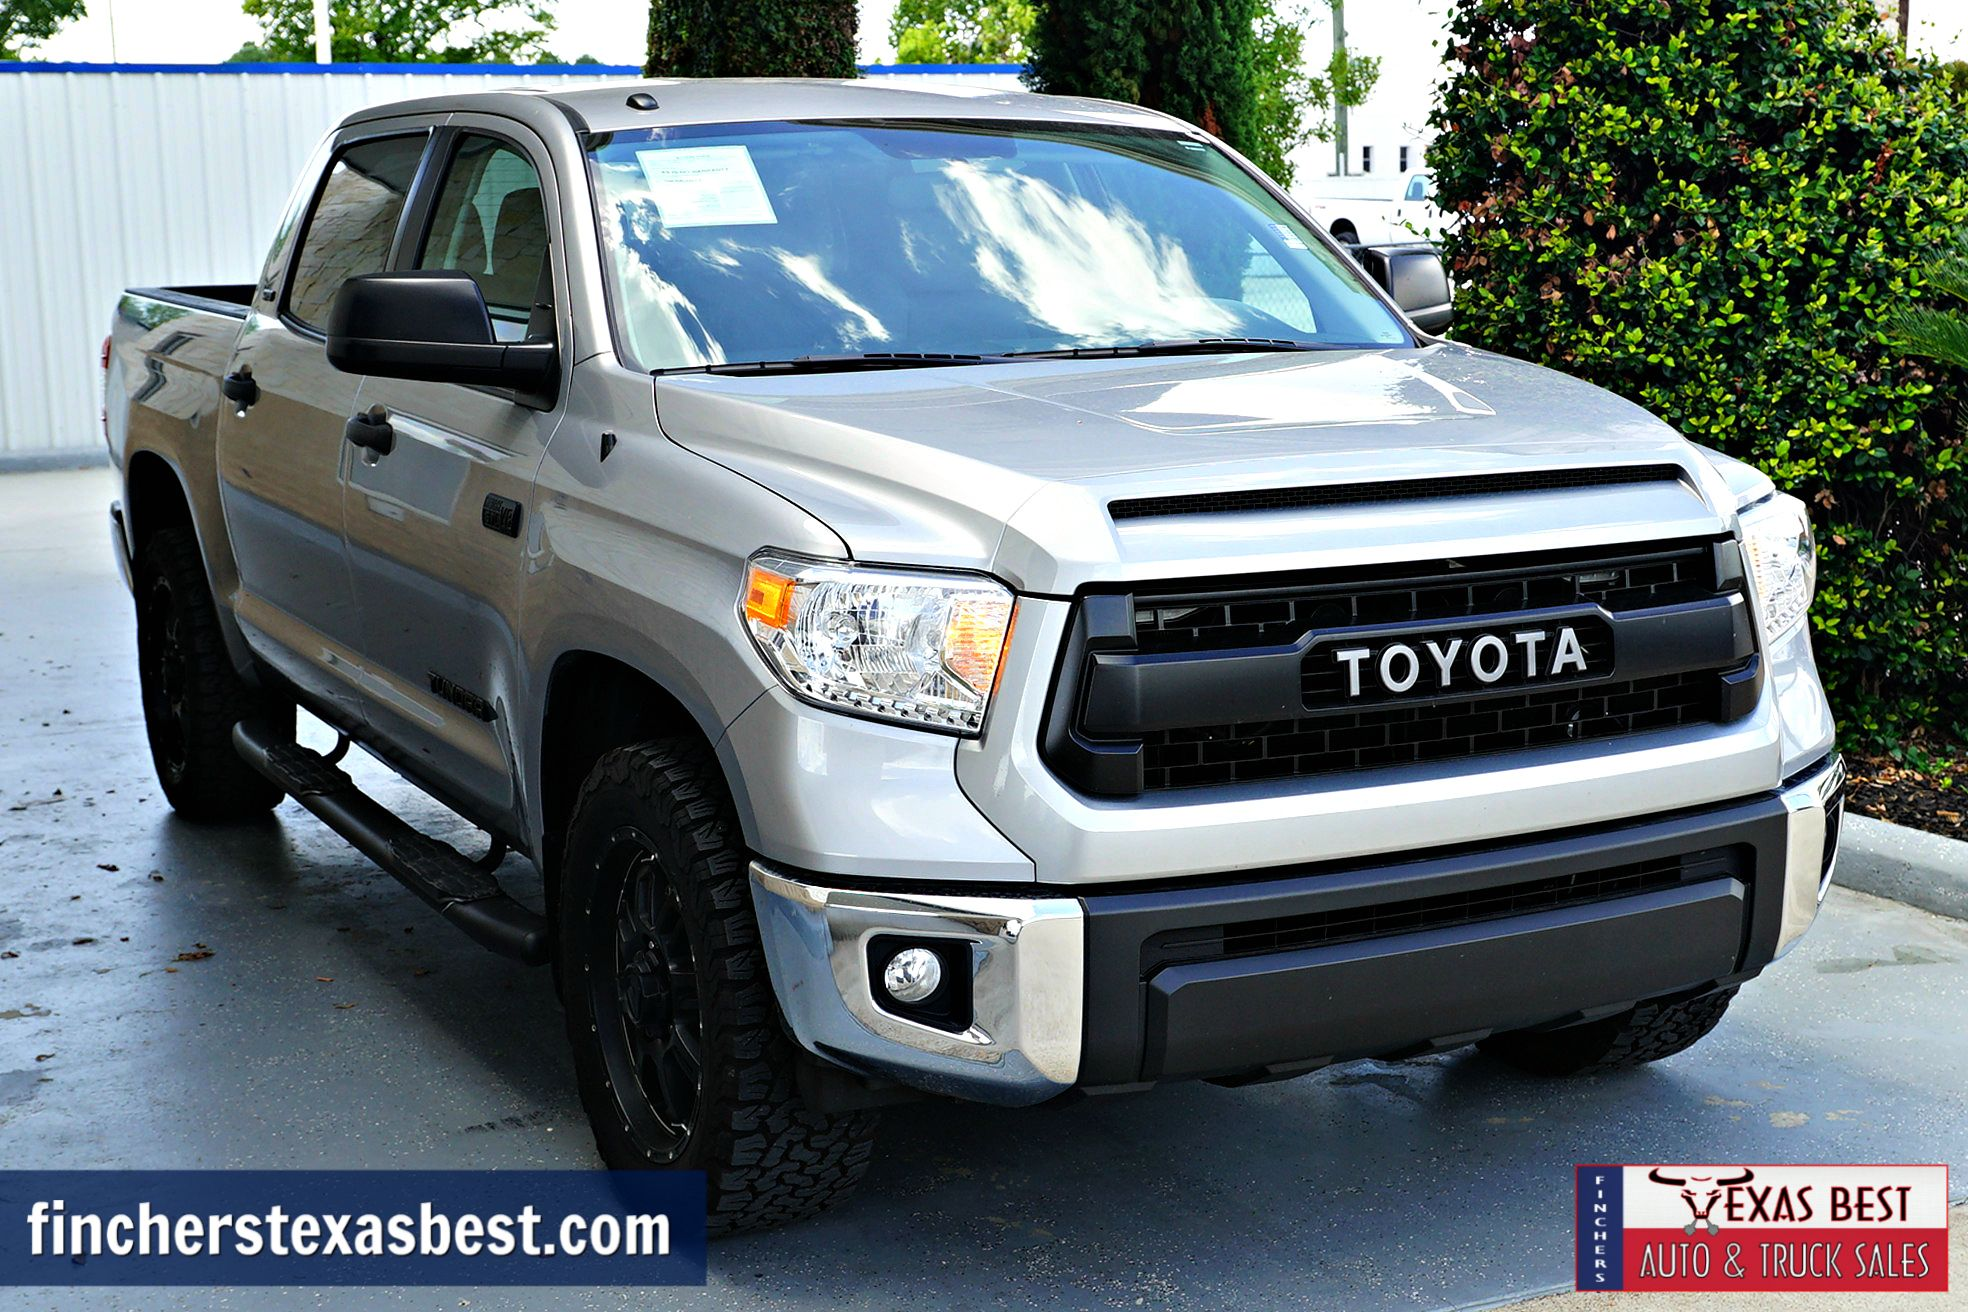 Best 10 toyota inventory ideas on pinterest toyota specials toyota tacoma x runner and small toyota truck